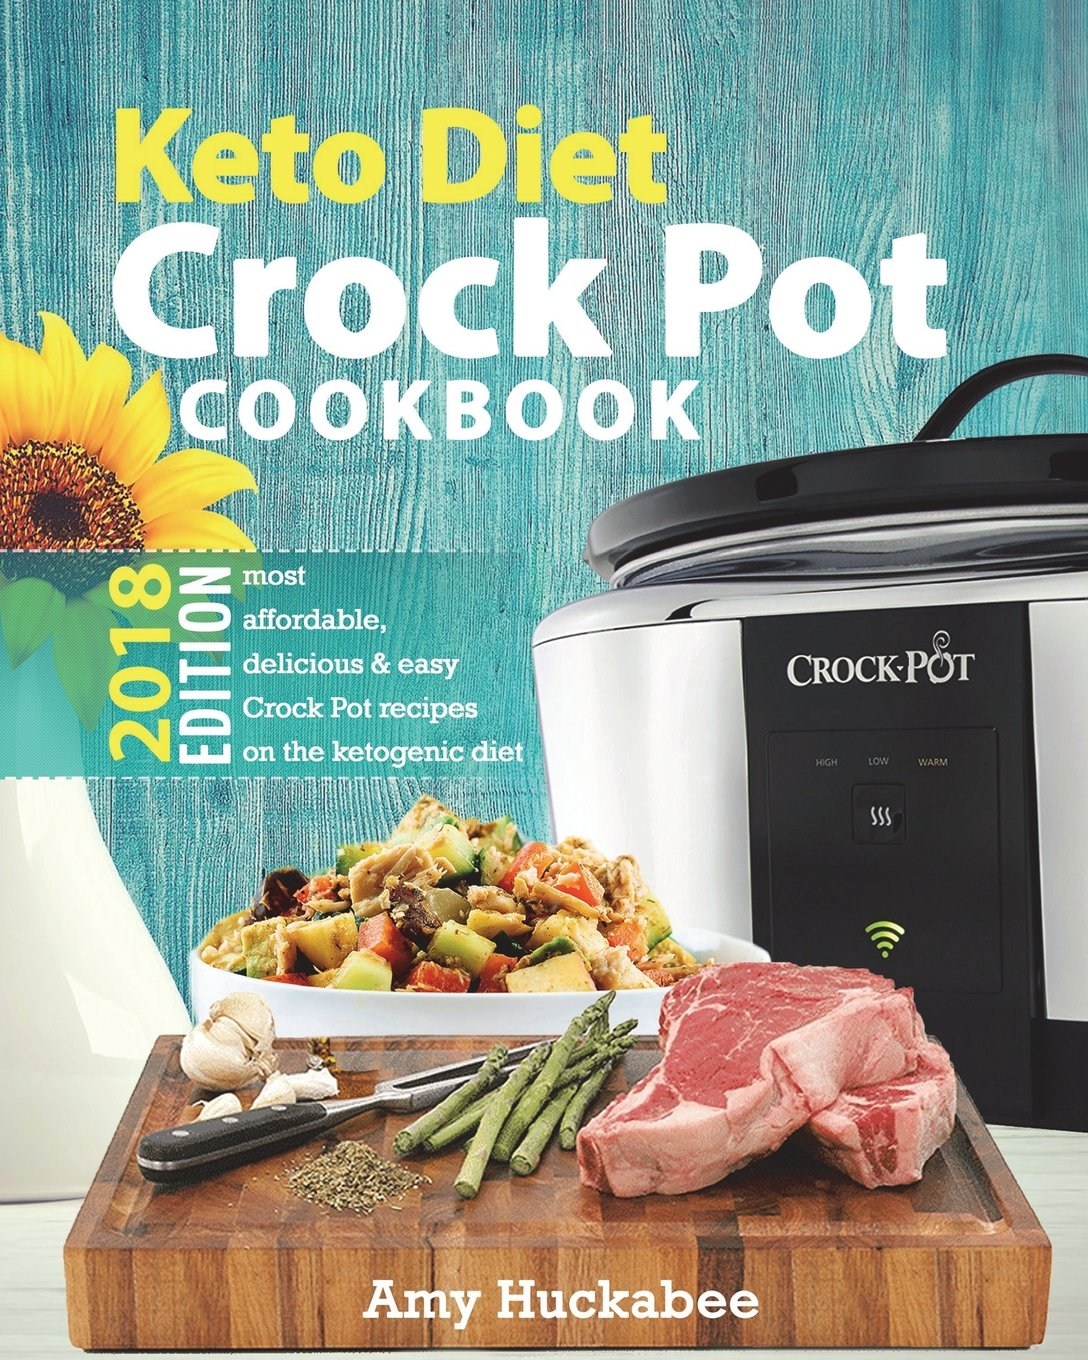 Keto Diet Crock Pot Cookbook 2018: Most Affordable, Quick & Easy Slow Cooker Recipes for Fast & Healthy Weight Loss on the Ketogenic Diet ebook